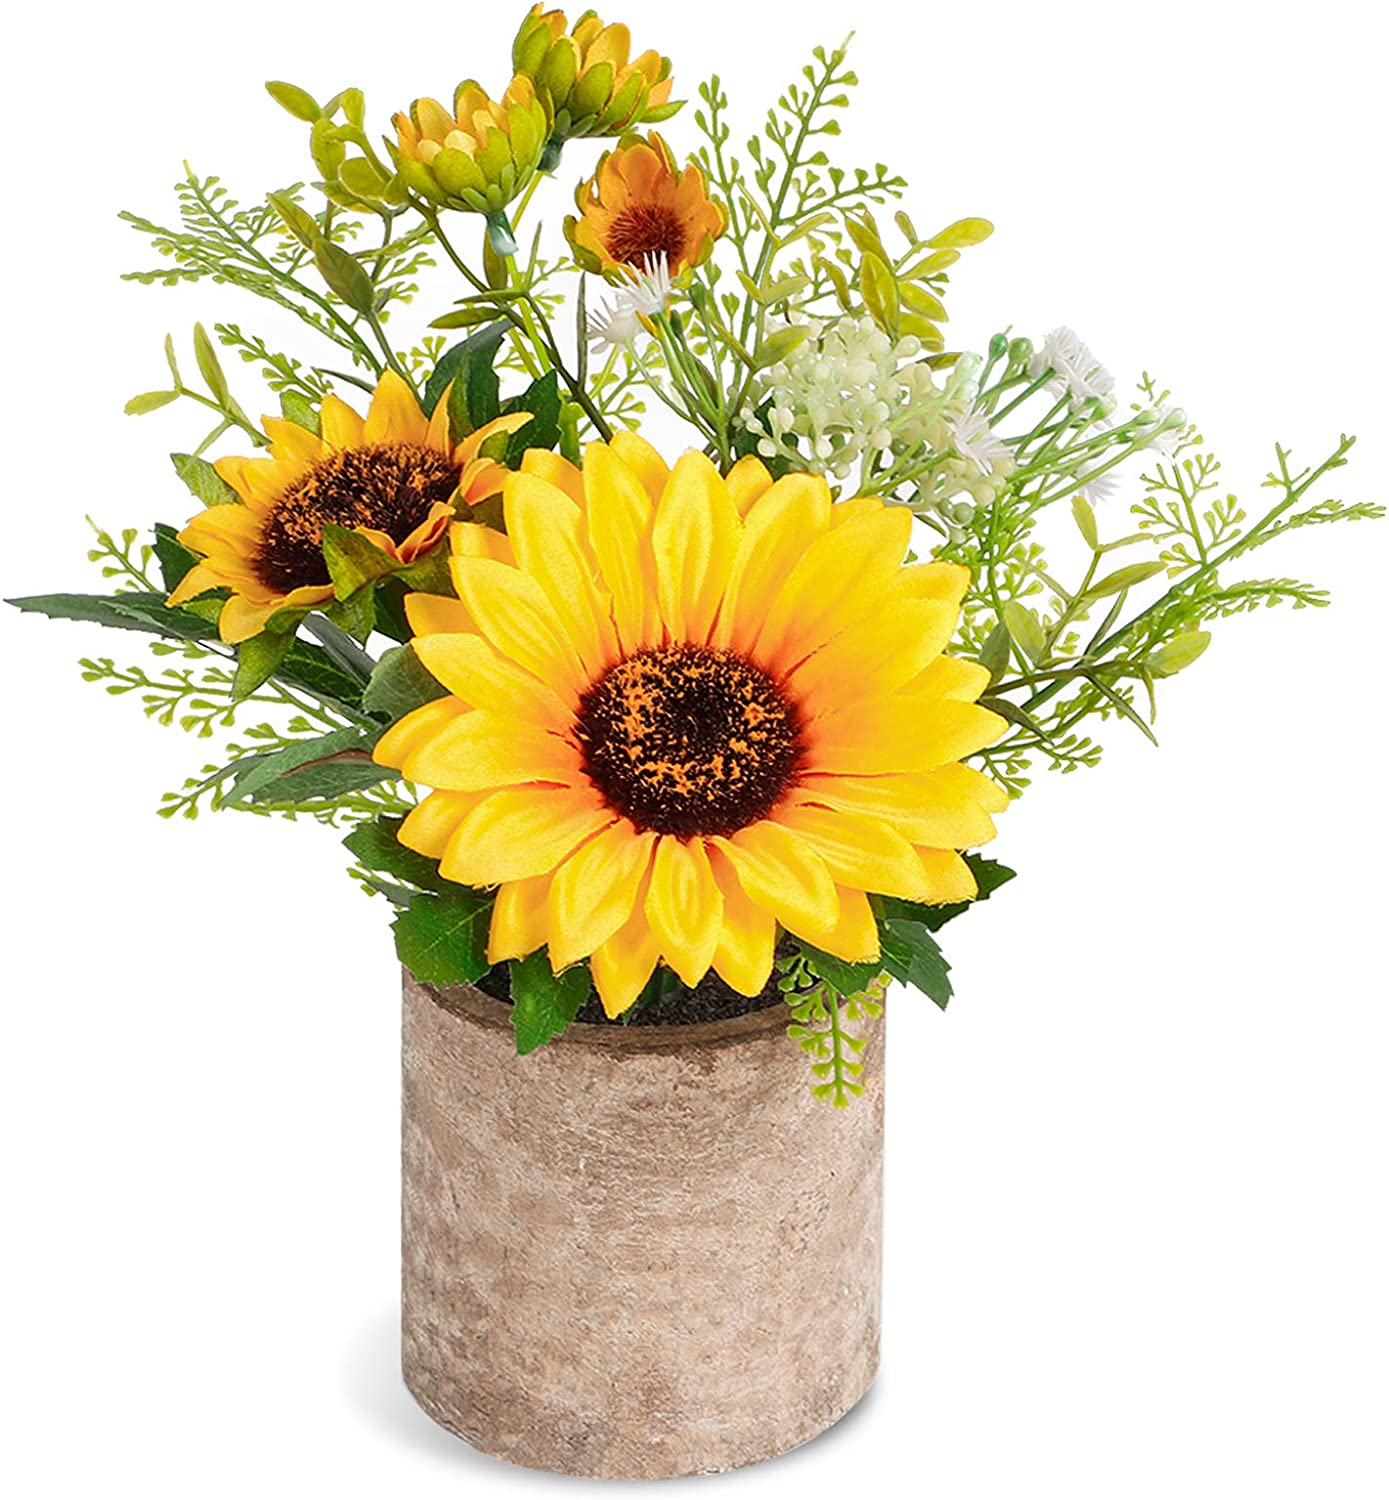 COCOBOO Artificial Sunflower Potted Plants Yellow Fake Flower in Pots, Summer Decorations for Home Bathroom Kitchen Rustic Table Centerpiece Decor